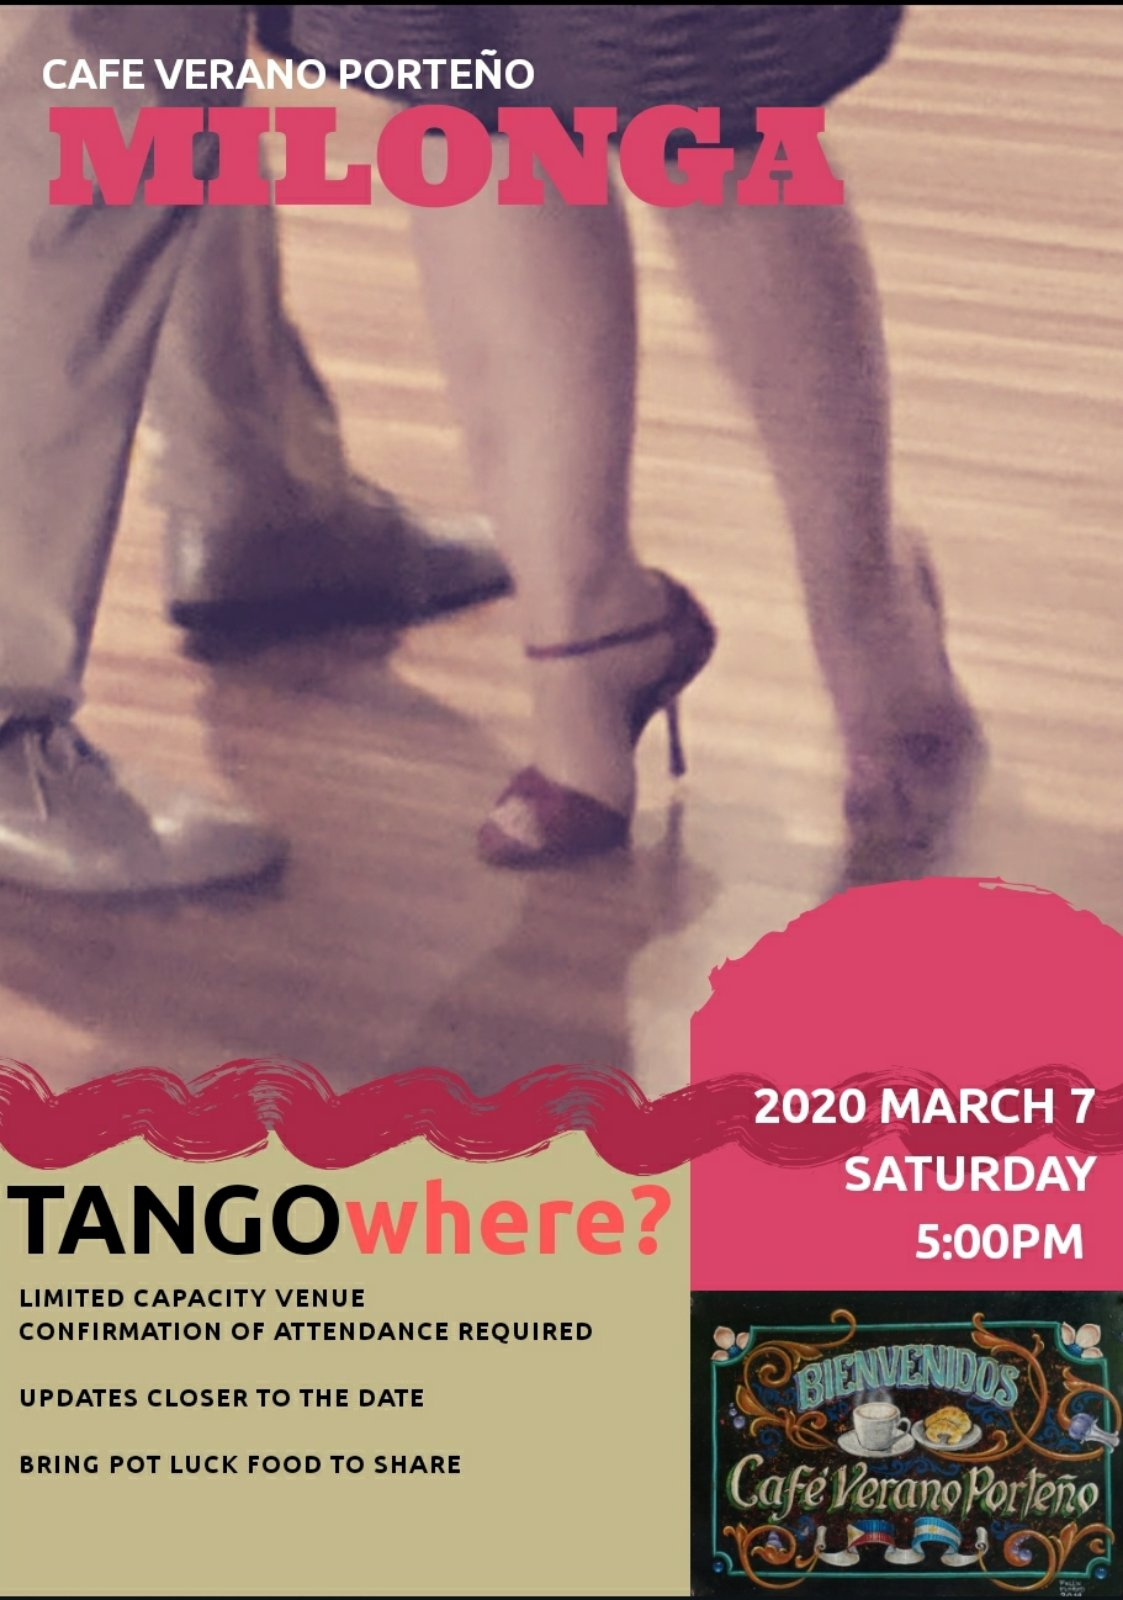 March 7, 2020: TANGOwhere milonga